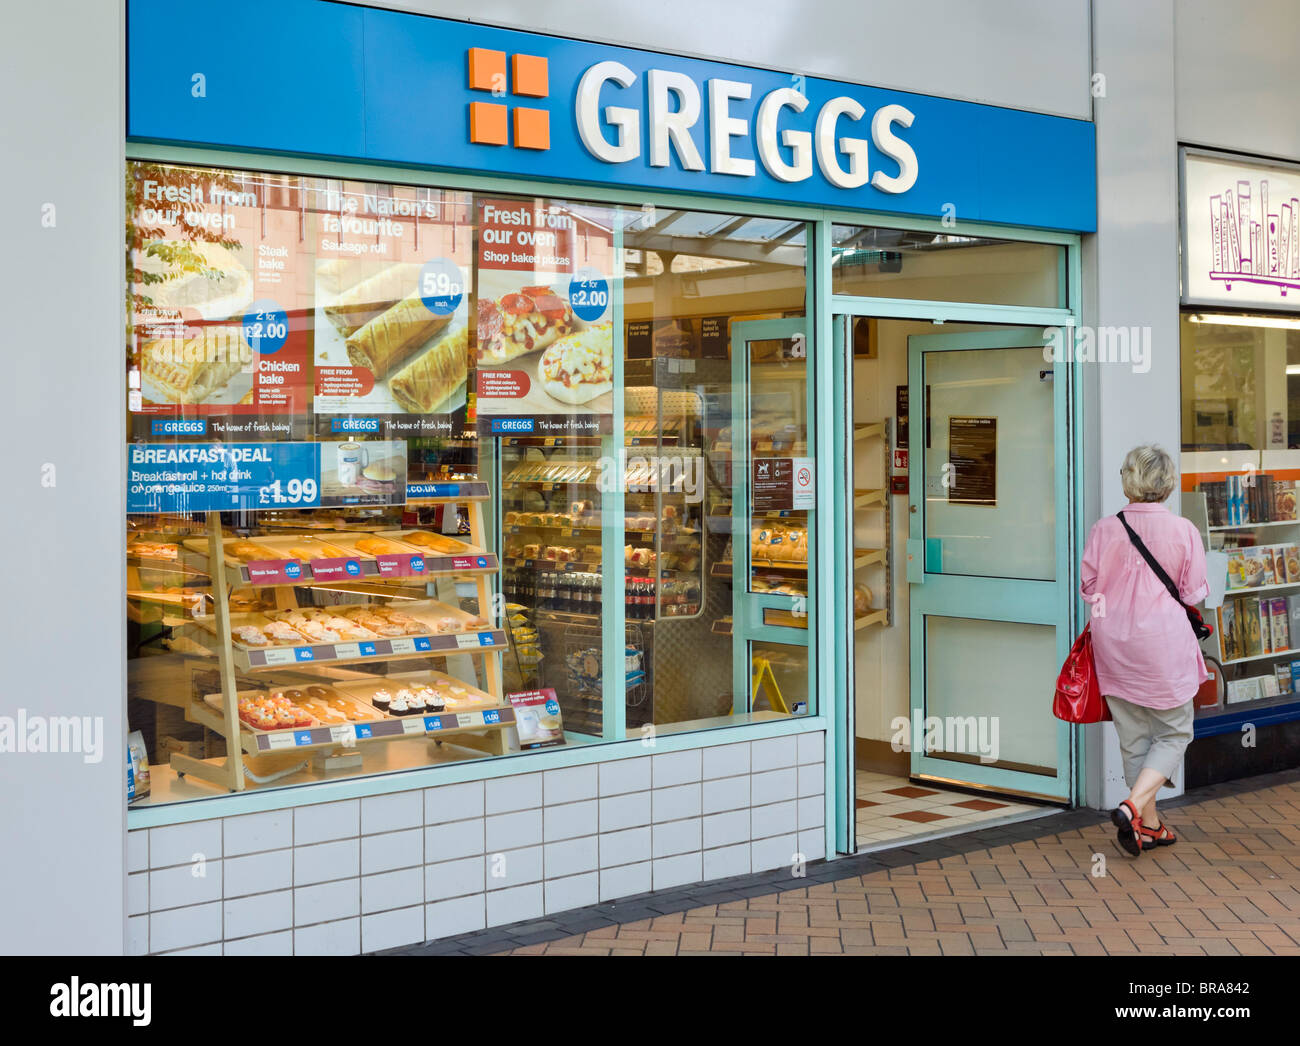 Greggs bakery in Huddersfield town centre, West Yorkshire, England, UK - Stock Image